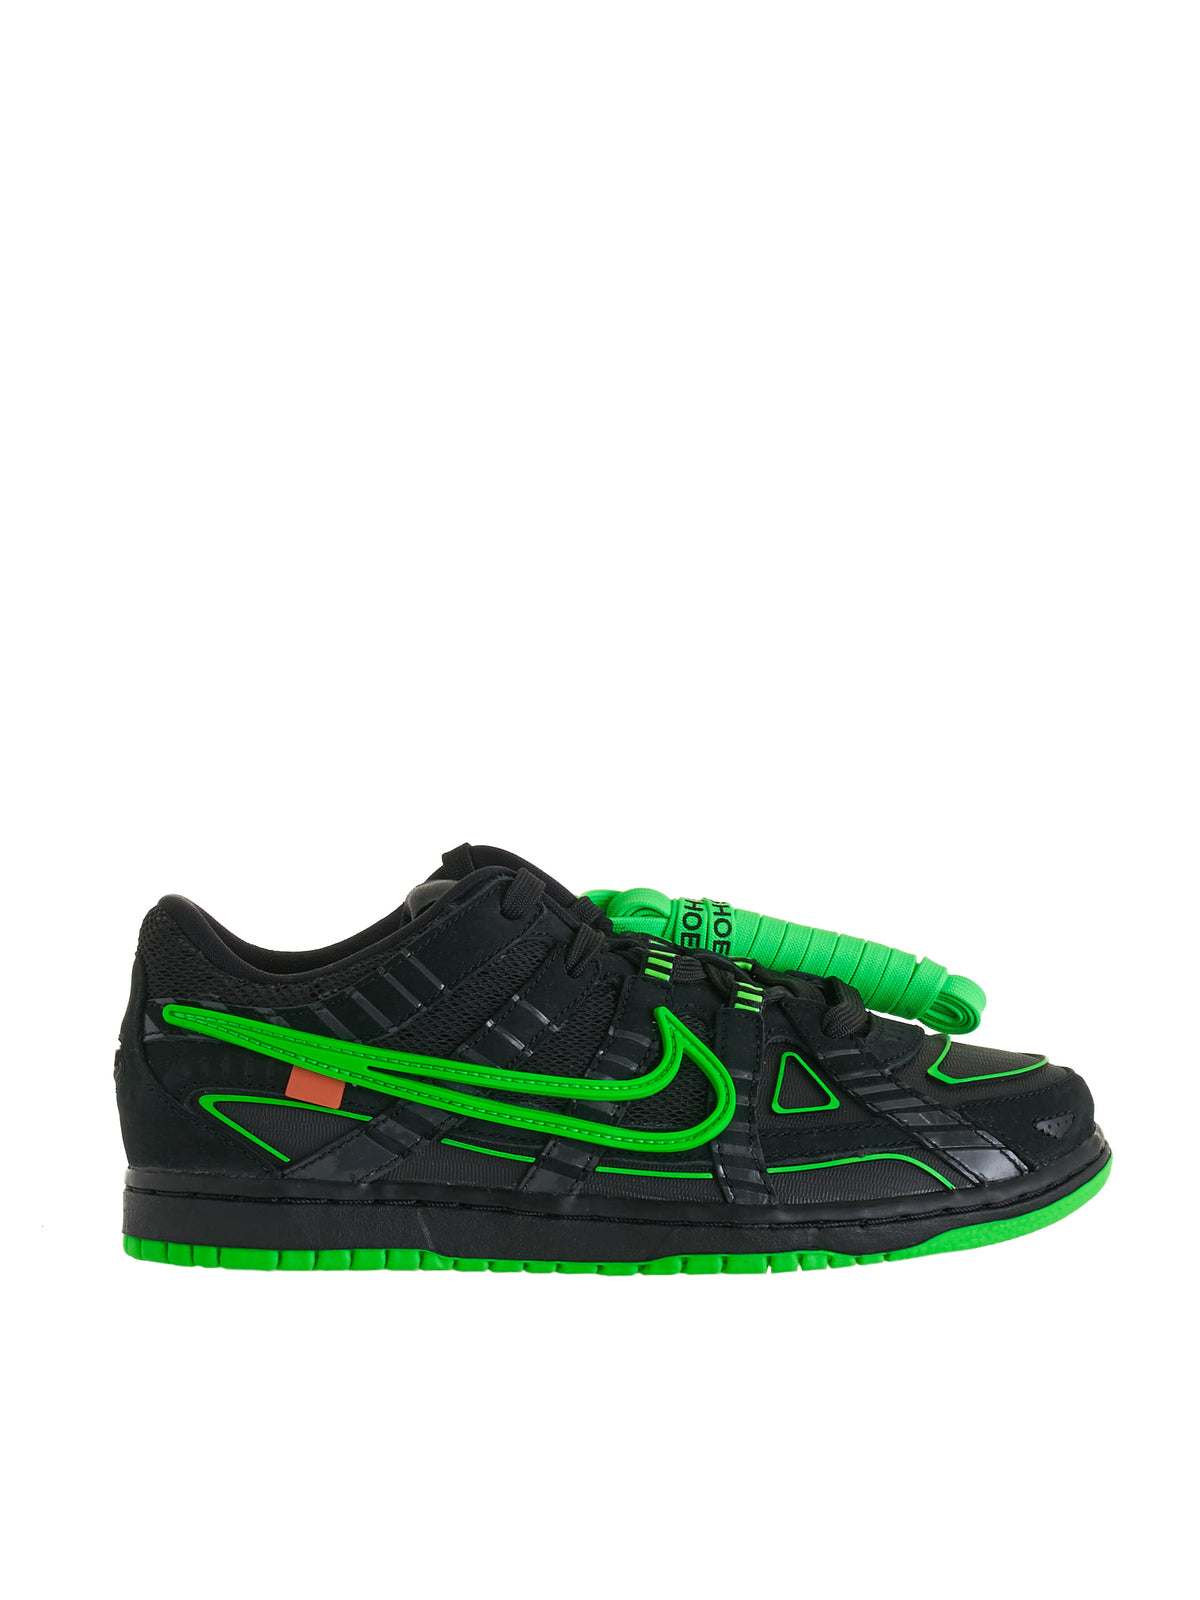 Kids Nike Air Rubber Dunk Low PS (CW7410-001-BLACK-GREEN)